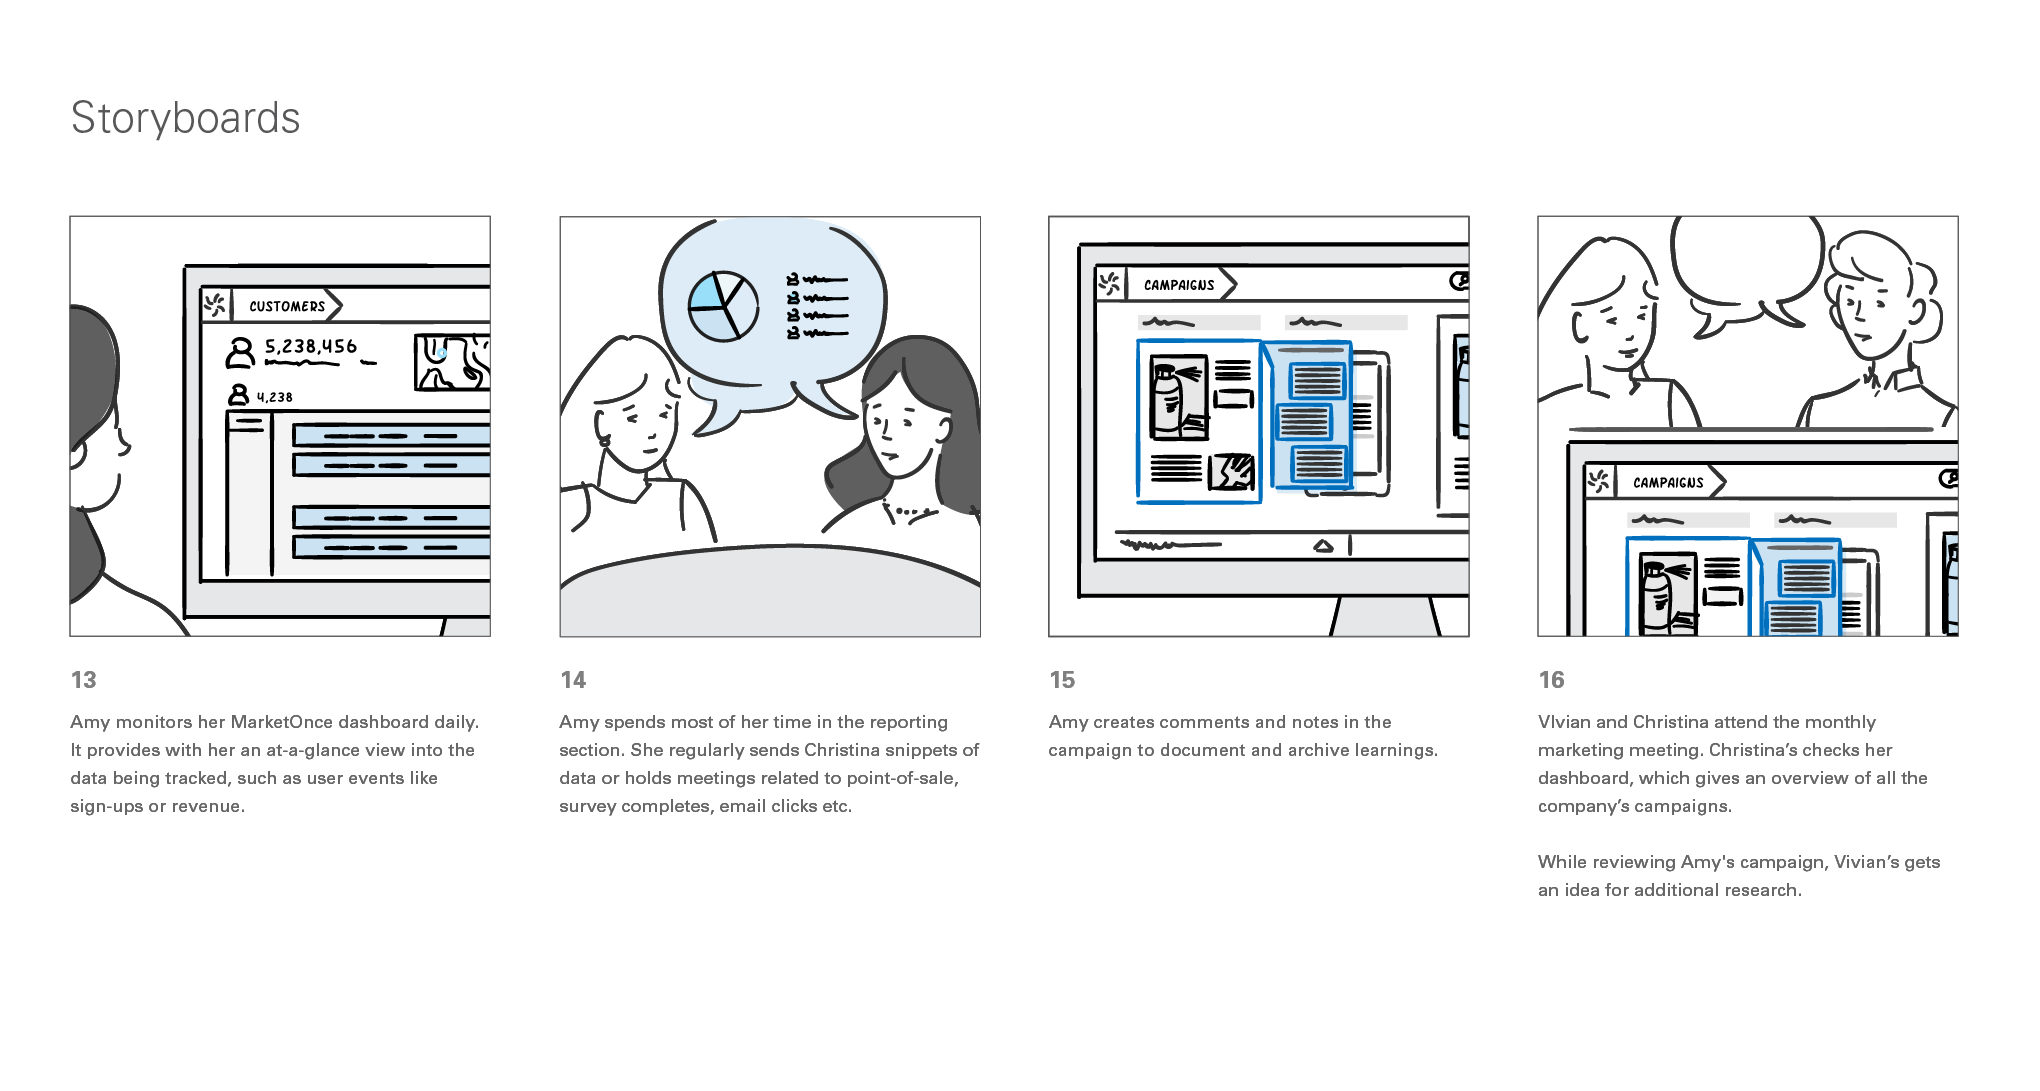 We drew a set of storyboards to help Oceanside10 imagine a future where all their products were on a unified SAAS platform. This helped Oceanside see how their product would be used as a unified solution for a large company.